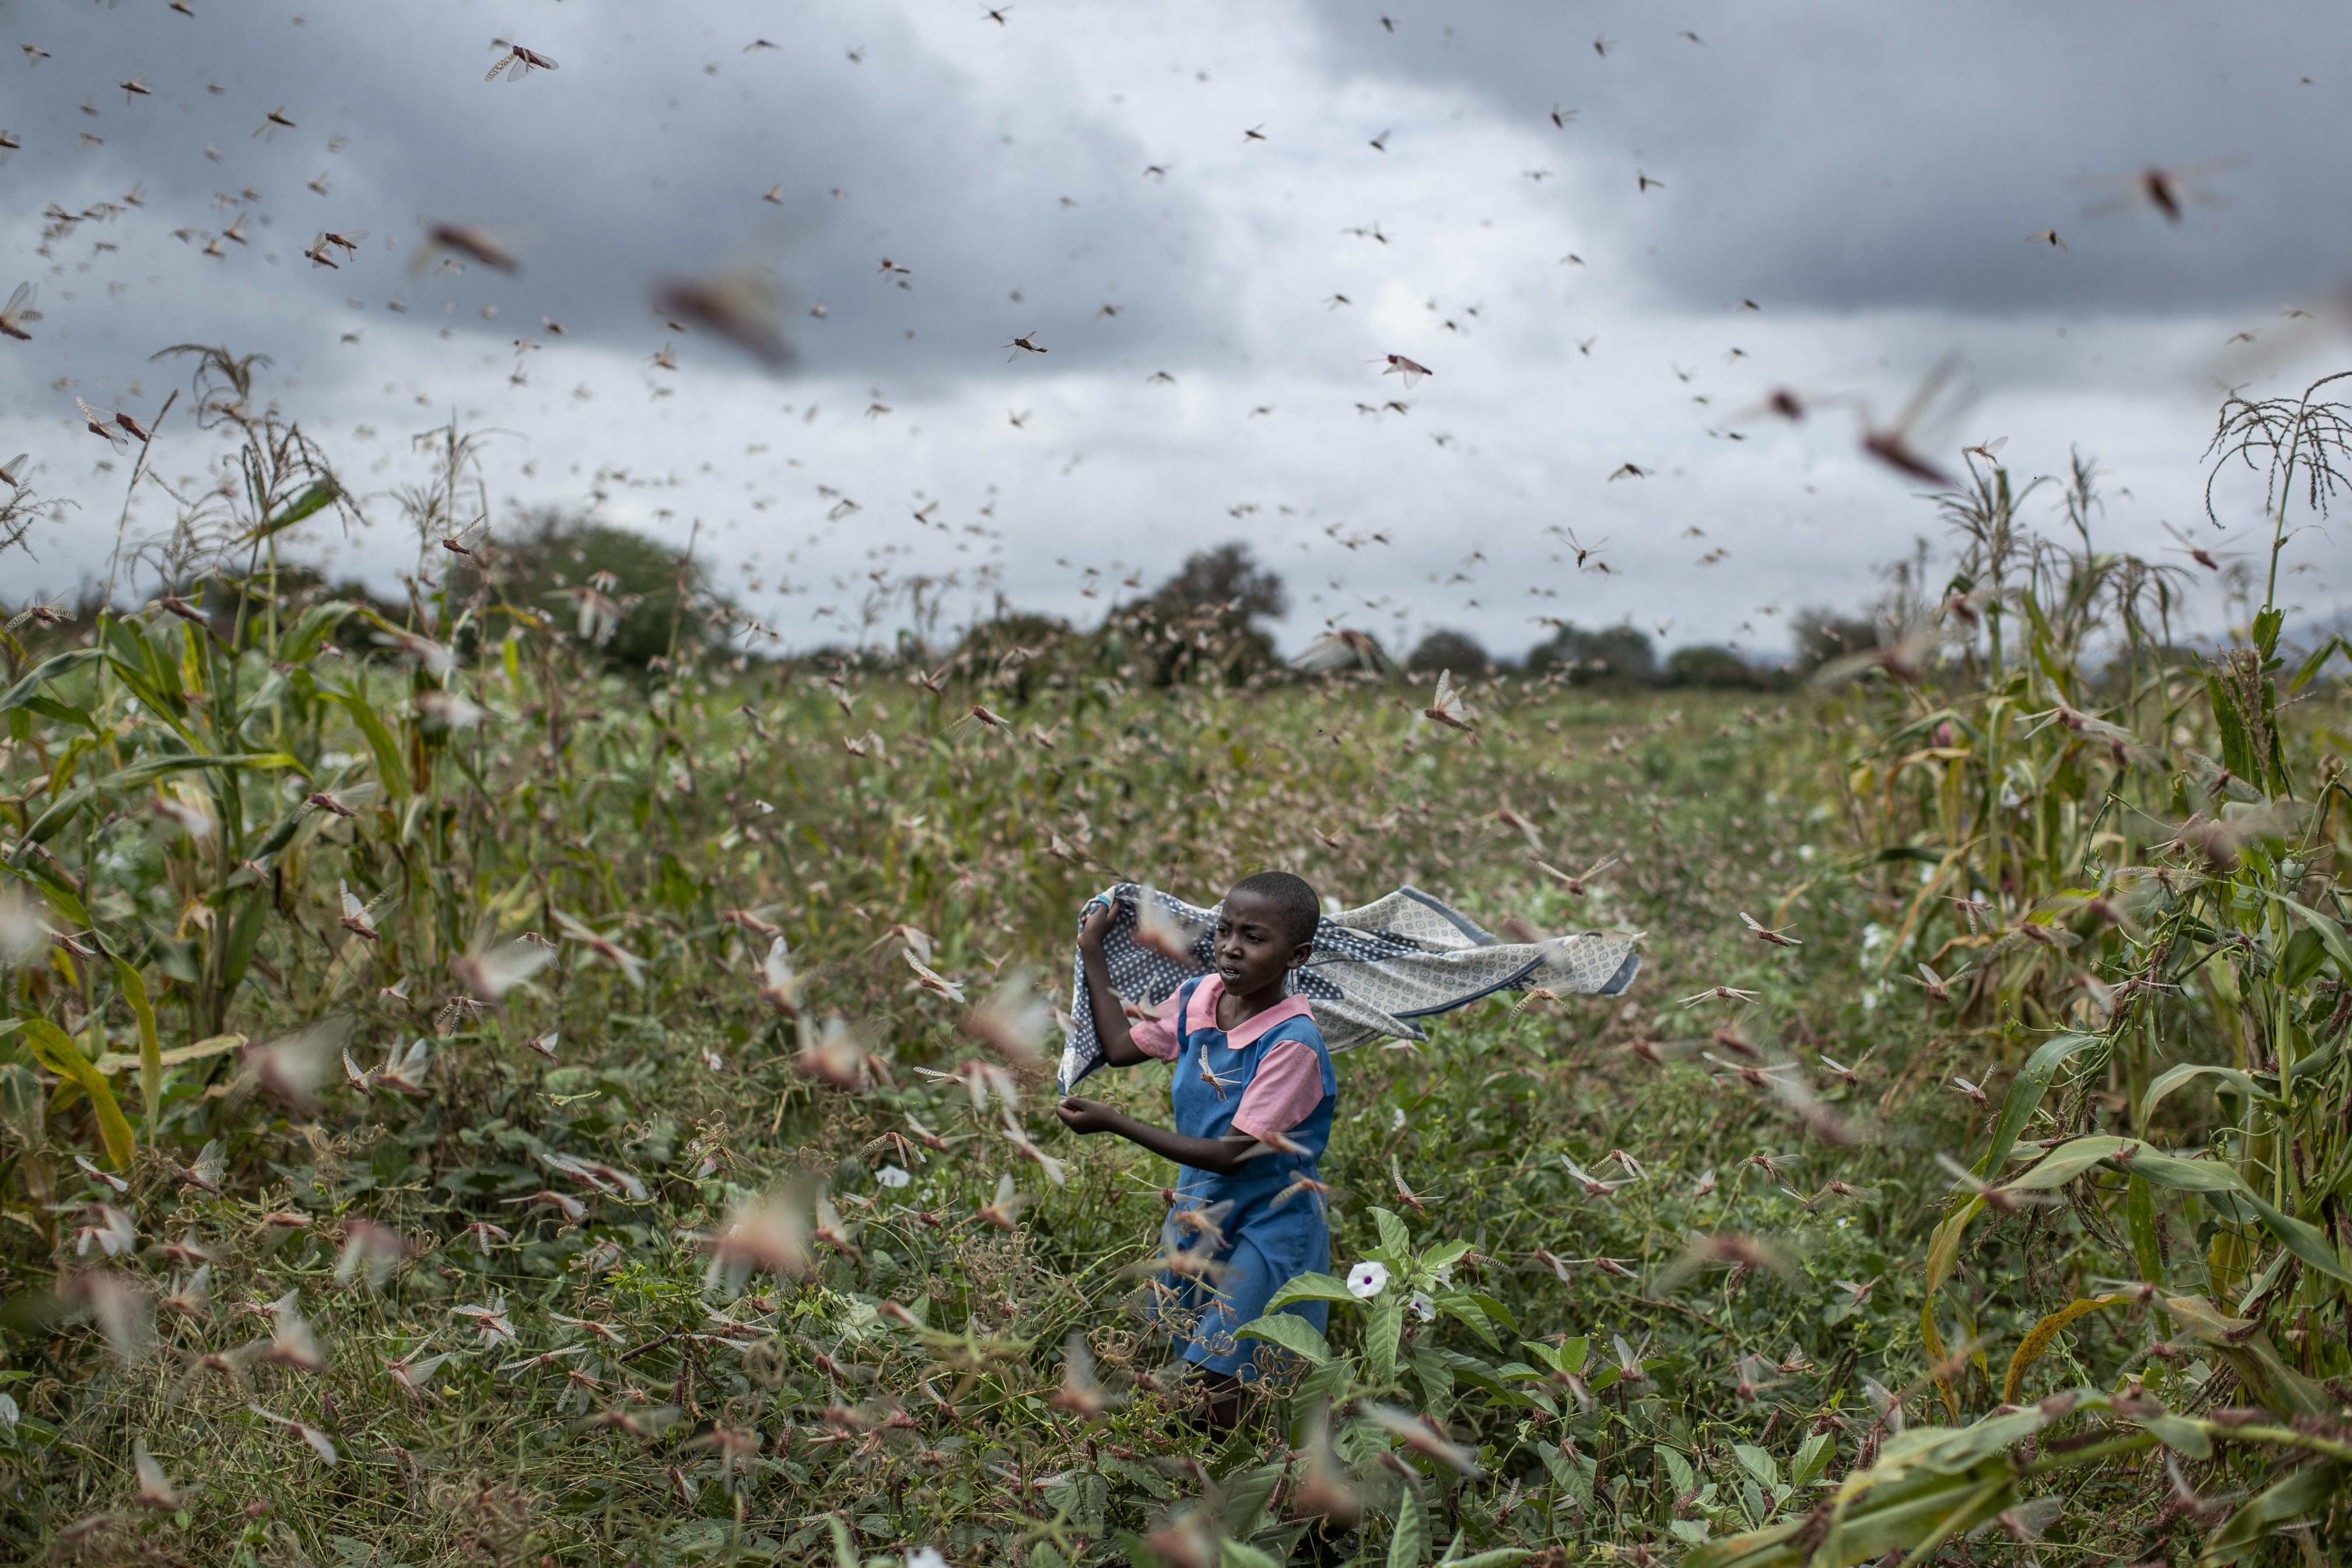 This Is Huge Locust Swarms In Africa Are Worst In Decades Washington Times